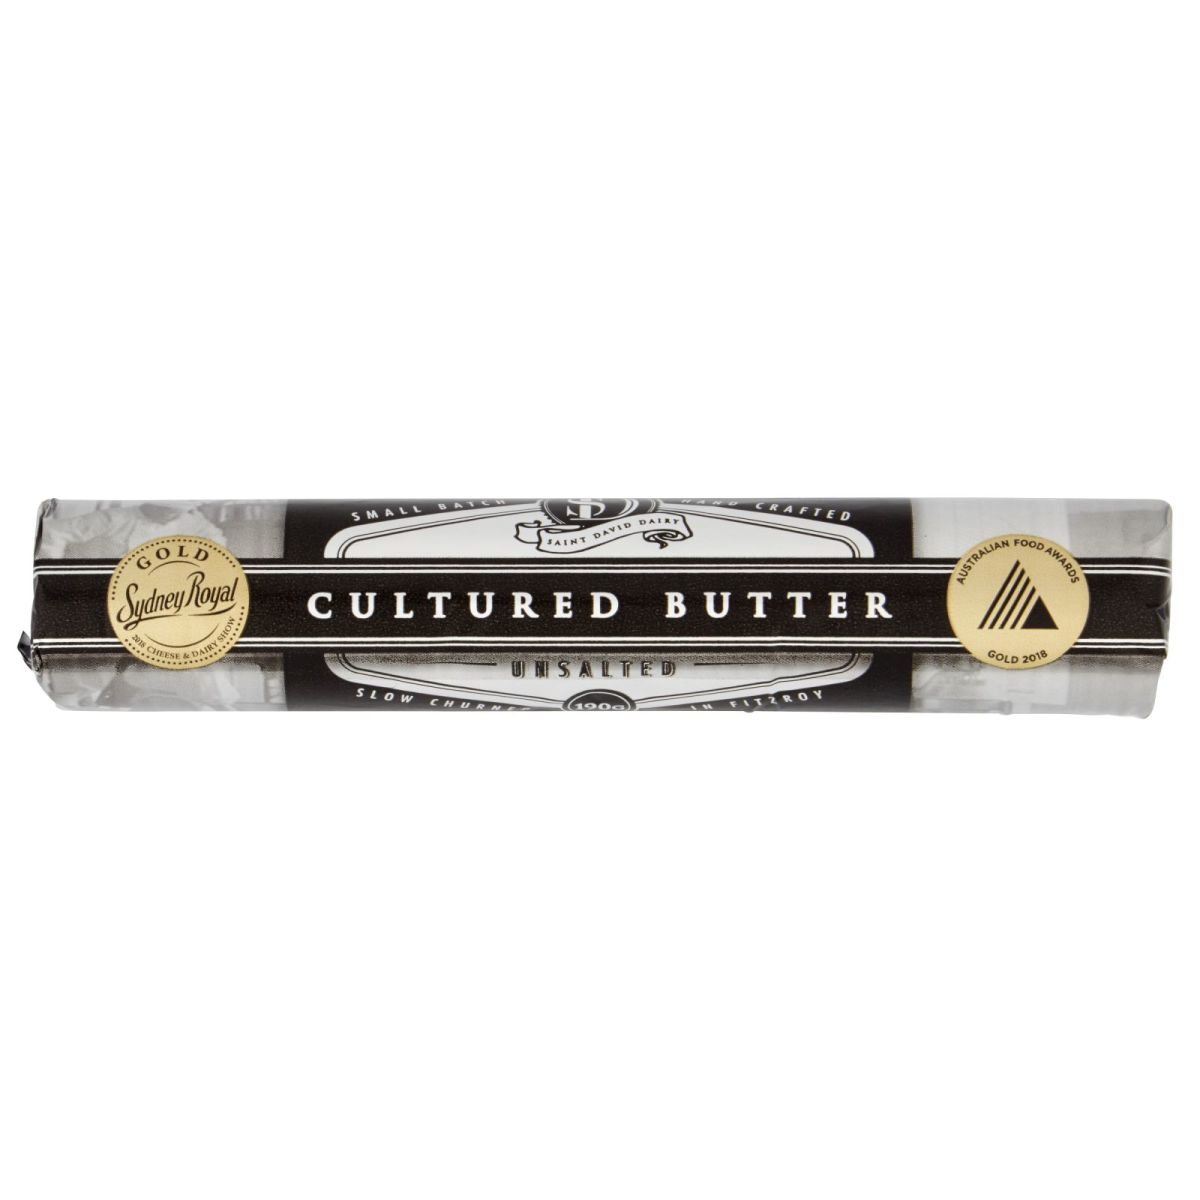 St David Dairy - Unsalted Cultured Butter Roll